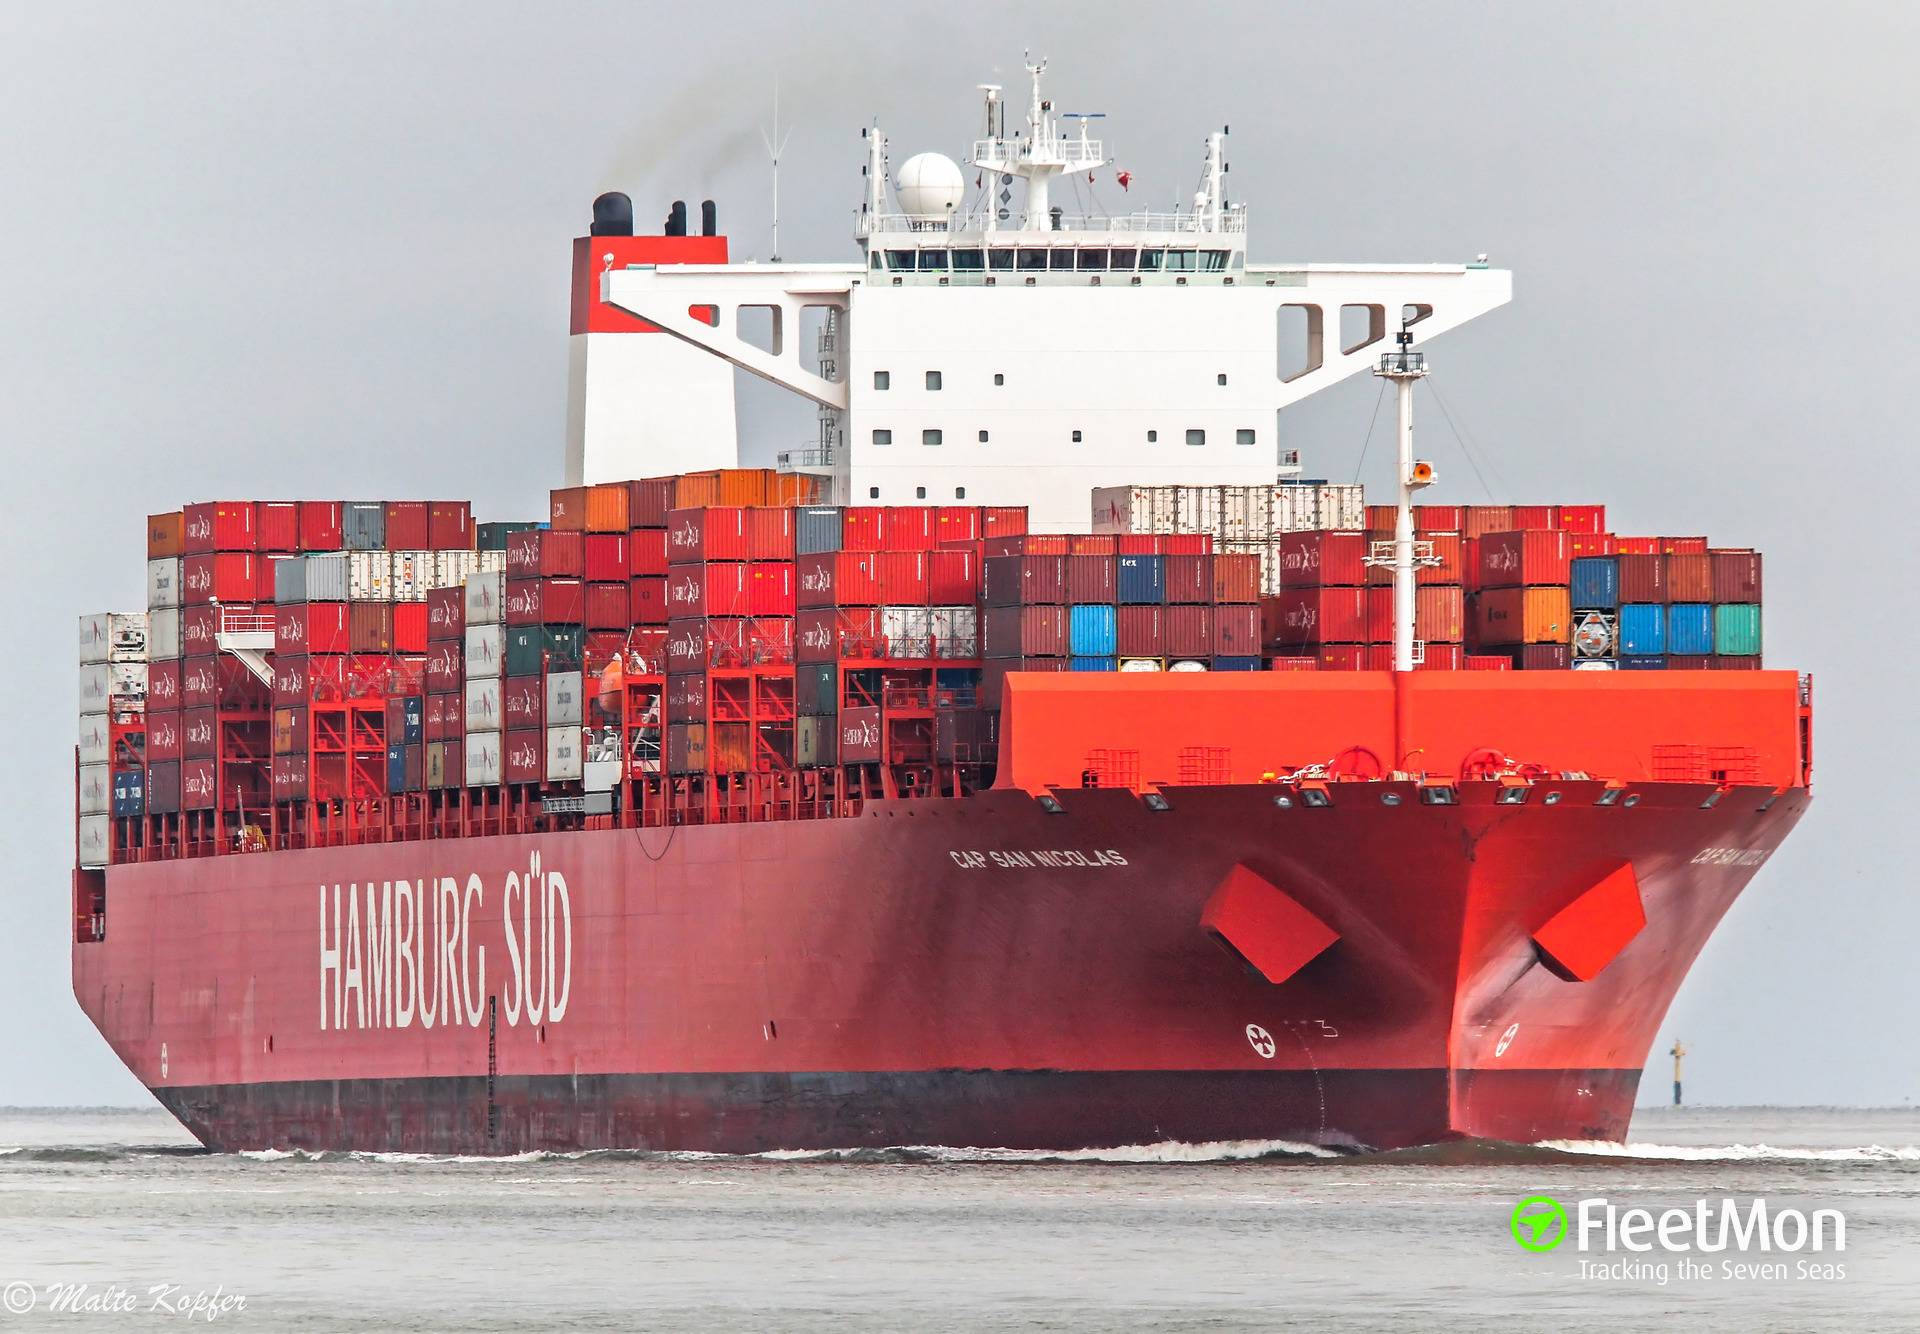 322 kilo of cocaine found in container lon board of boxship CAP SAN NICOLAS